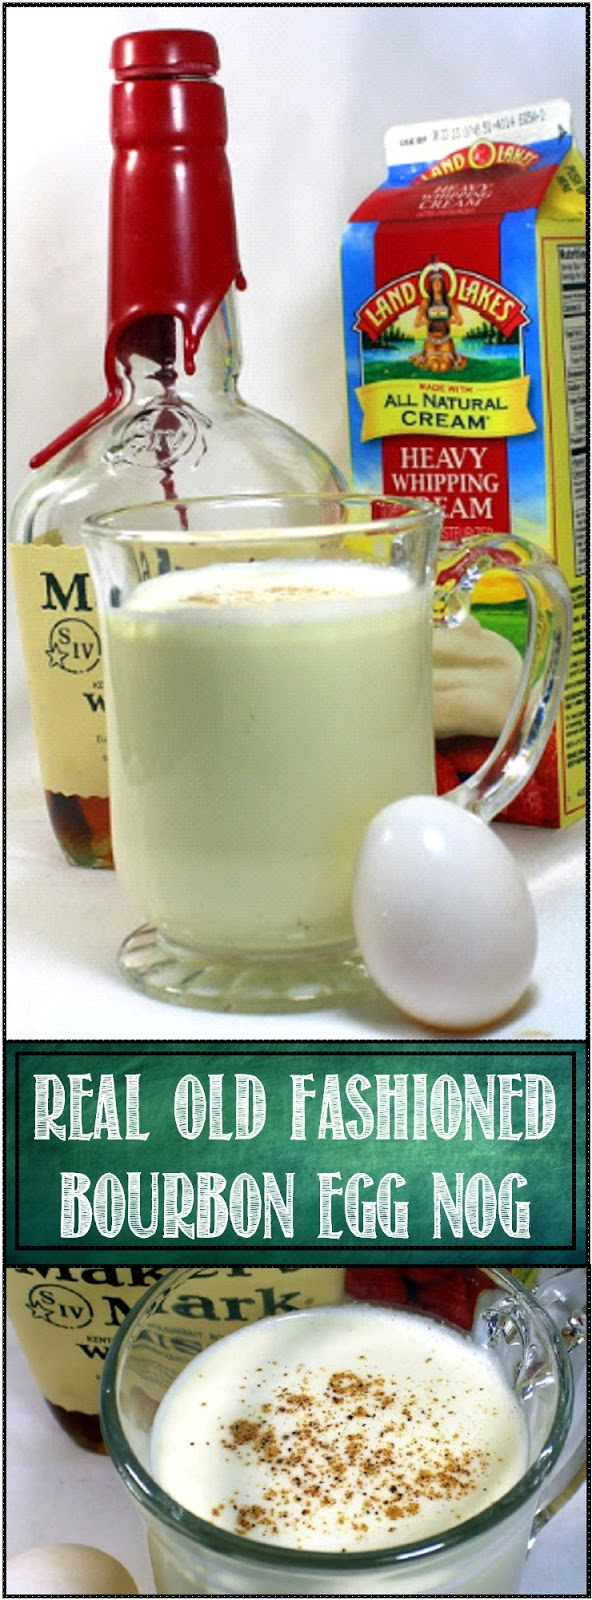 What Is Old Fashioned Egg Nog